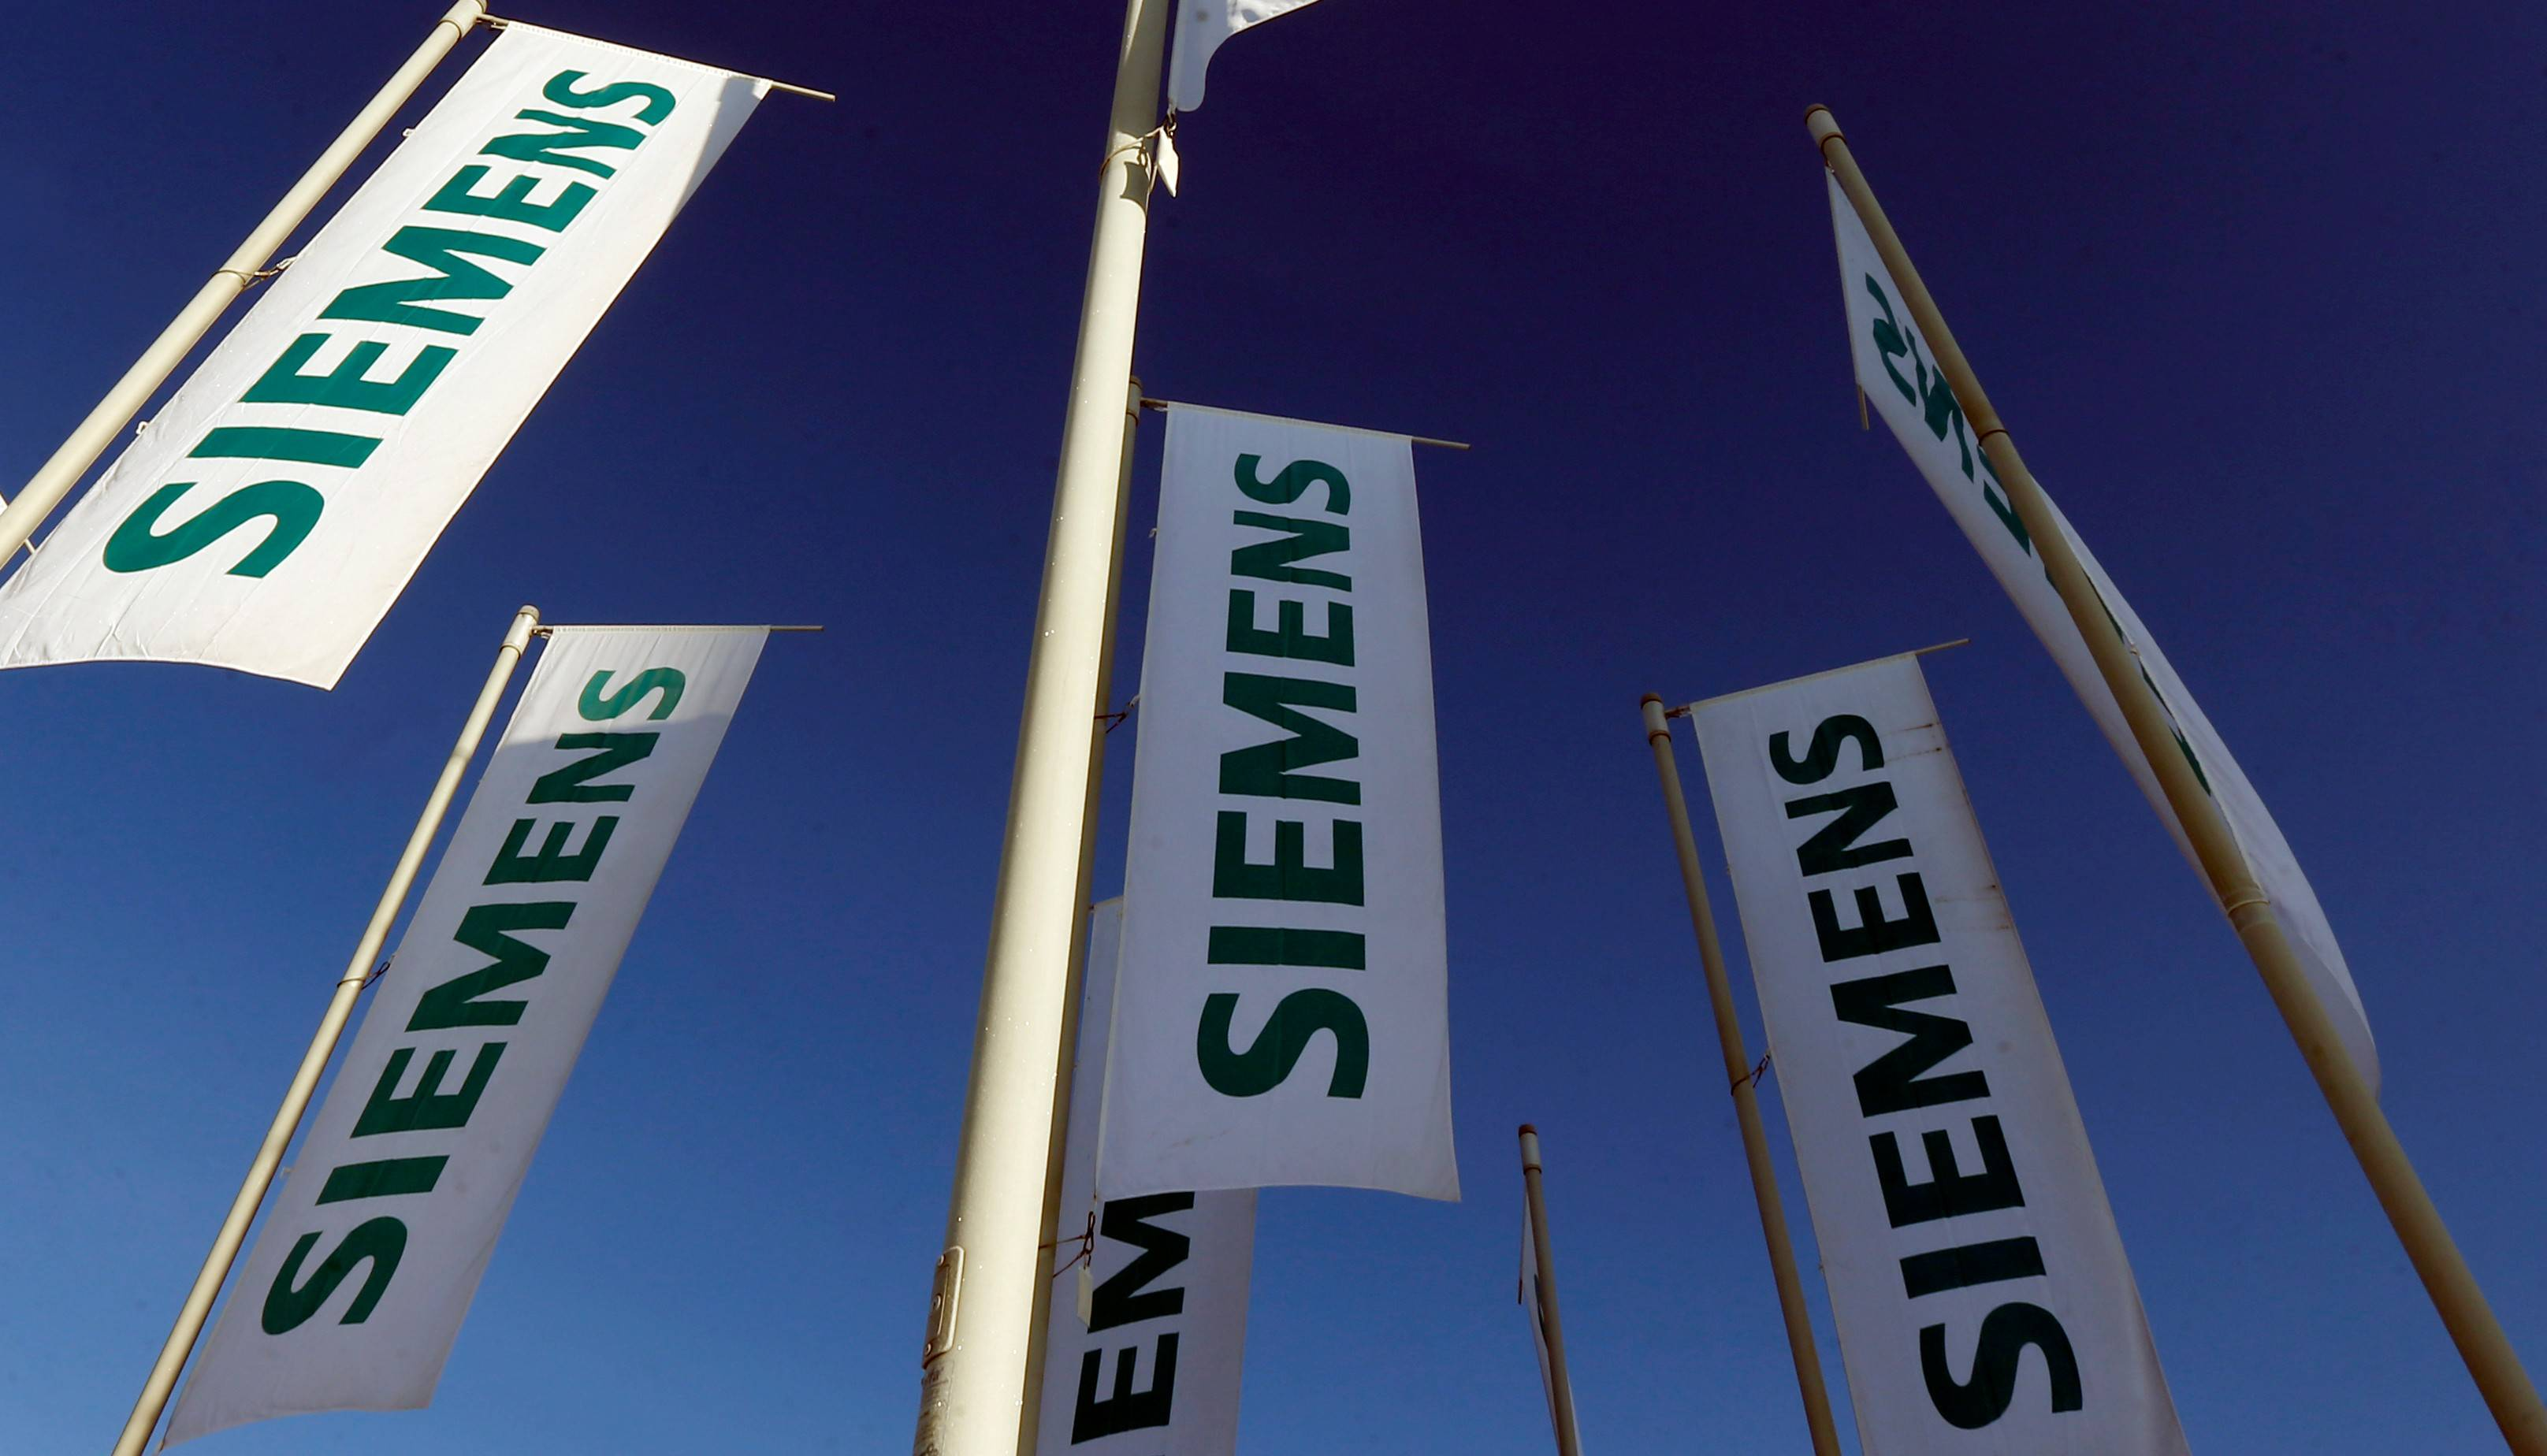 Siemens Medical Solutions with offices in Hoffman Estates is planning to cut 104 workers.